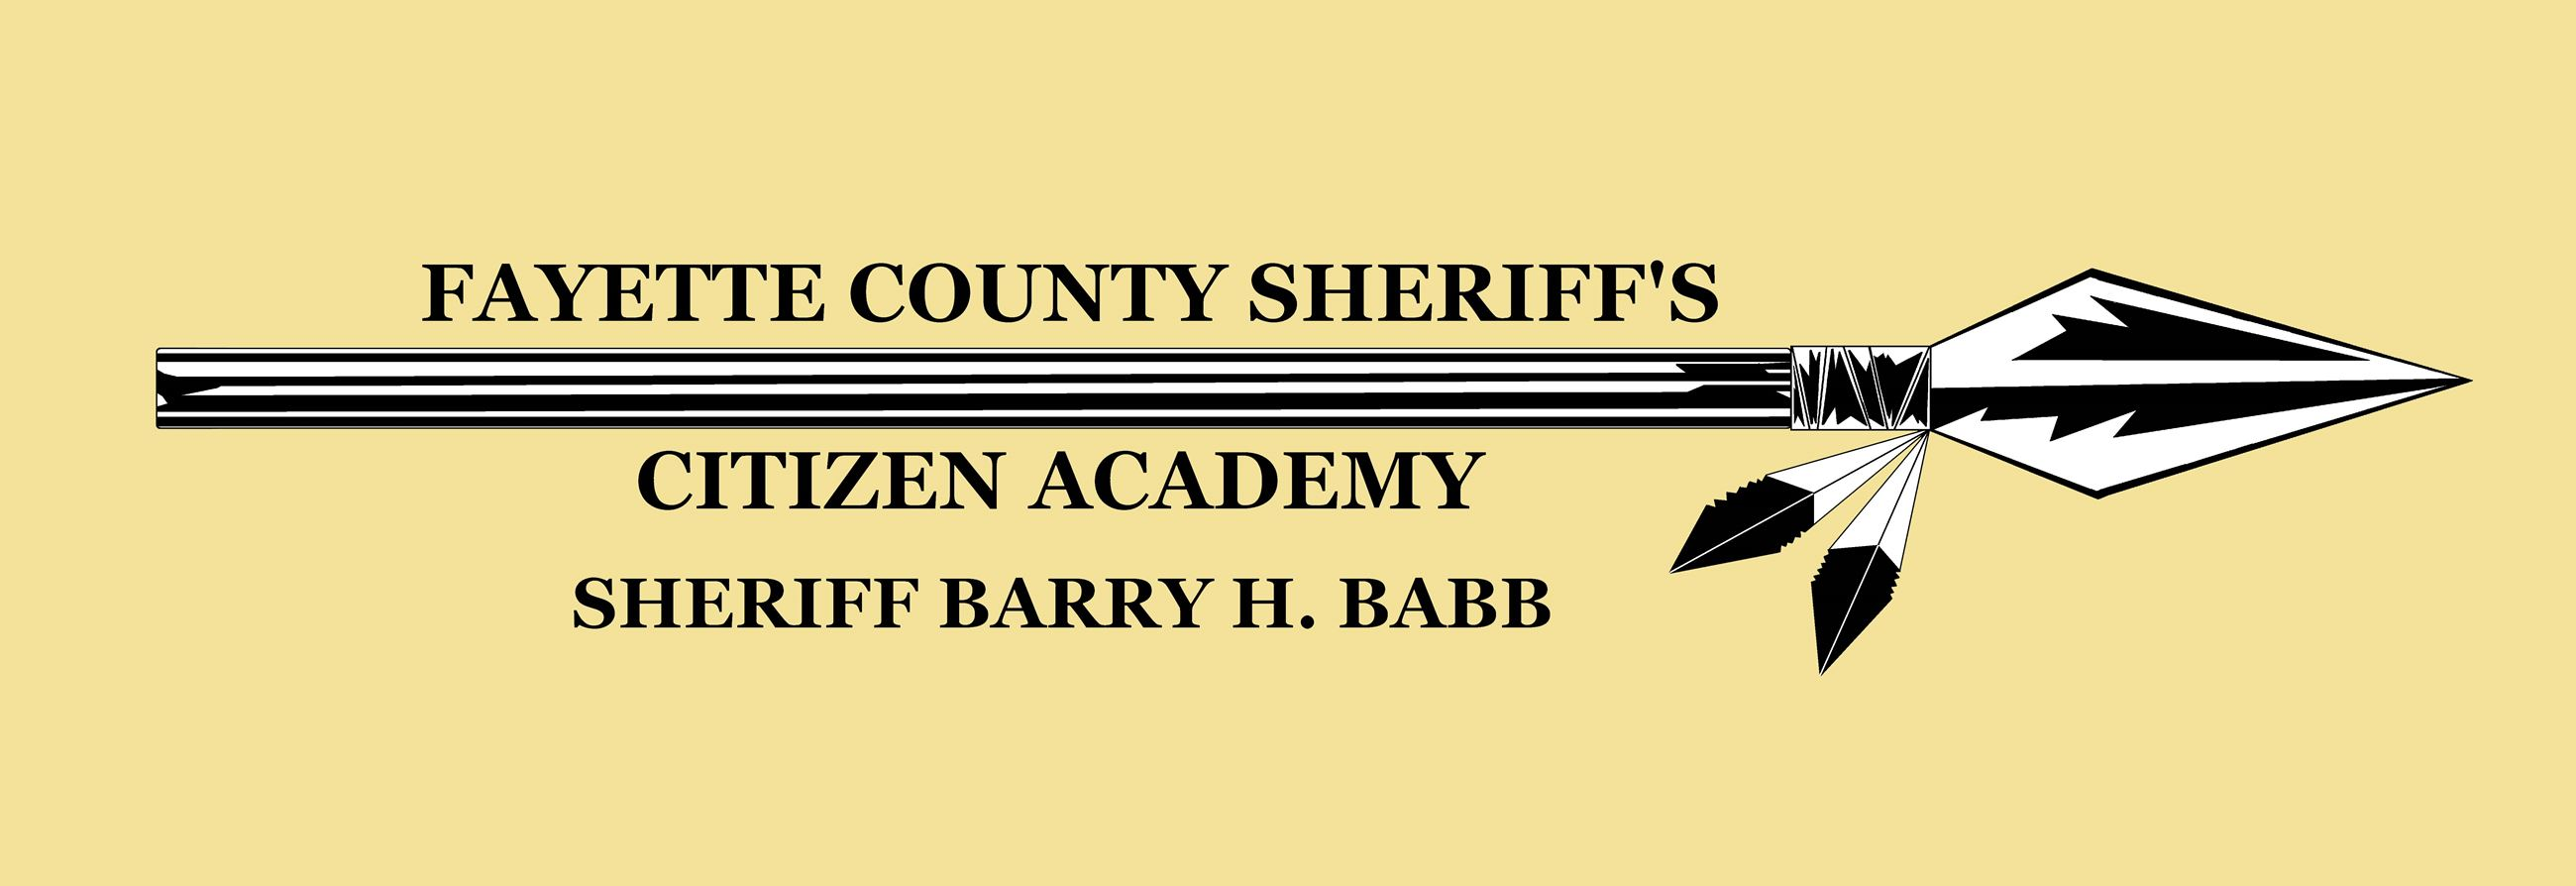 Fayette County Sheriffs Citizen Academy, Sheriff Barry H. Barb